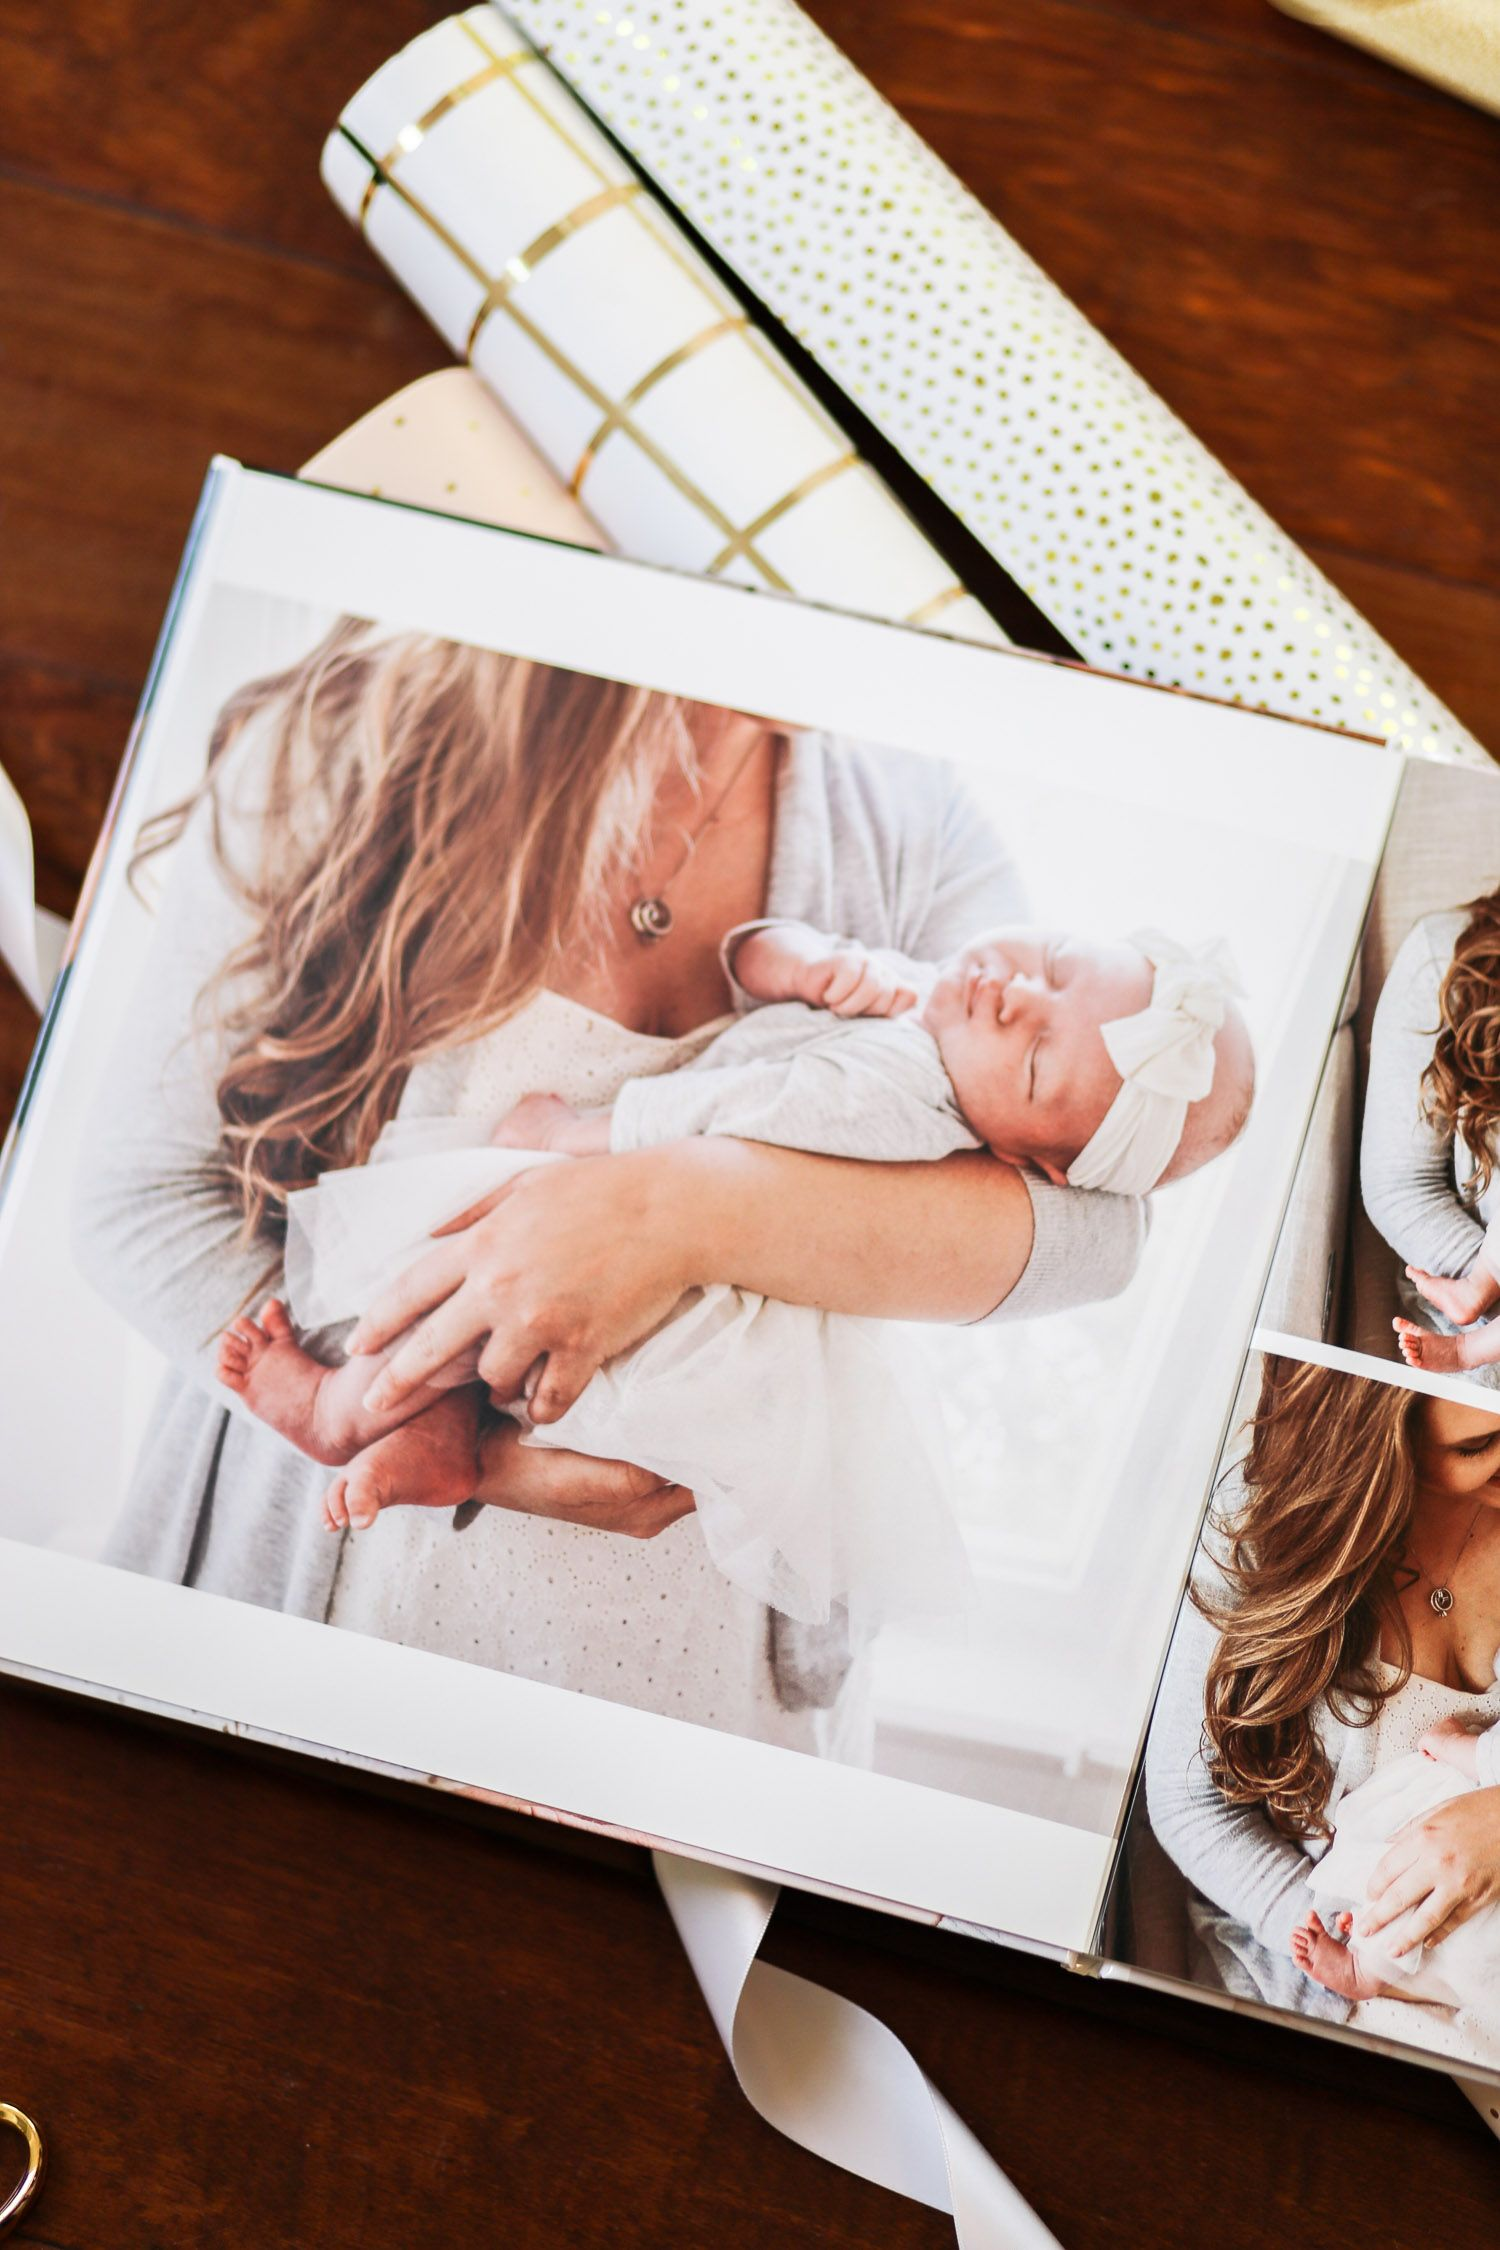 Personalized Christmas Gift Ideas from Shutterfly | Holiday Parties ...